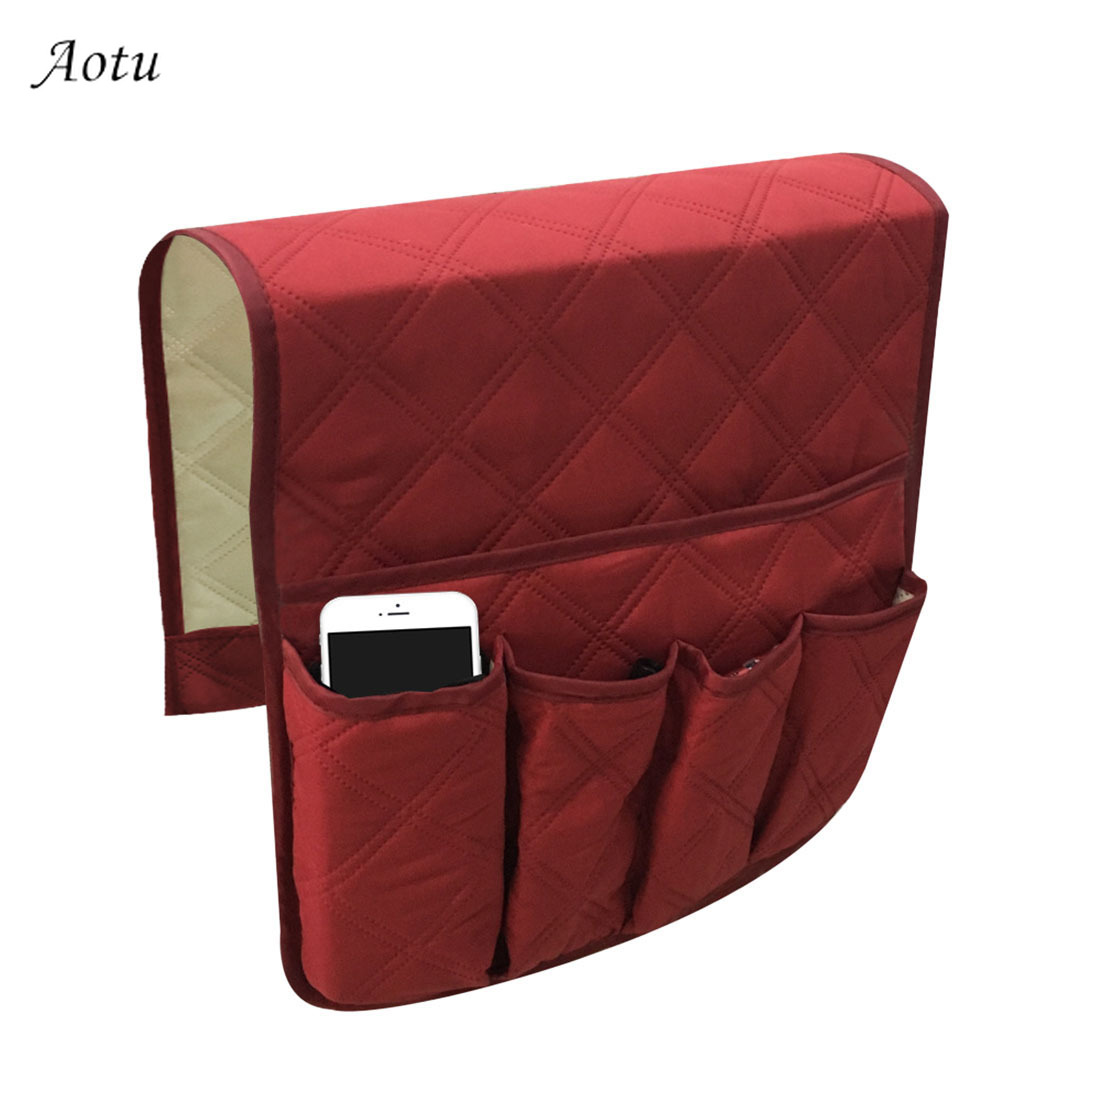 Sofa Storage Bag Use for Game Controller Pens ipad 5 Pocket Sofa Couch Arm Rest Organizer TV Remote Control Organizer Holder